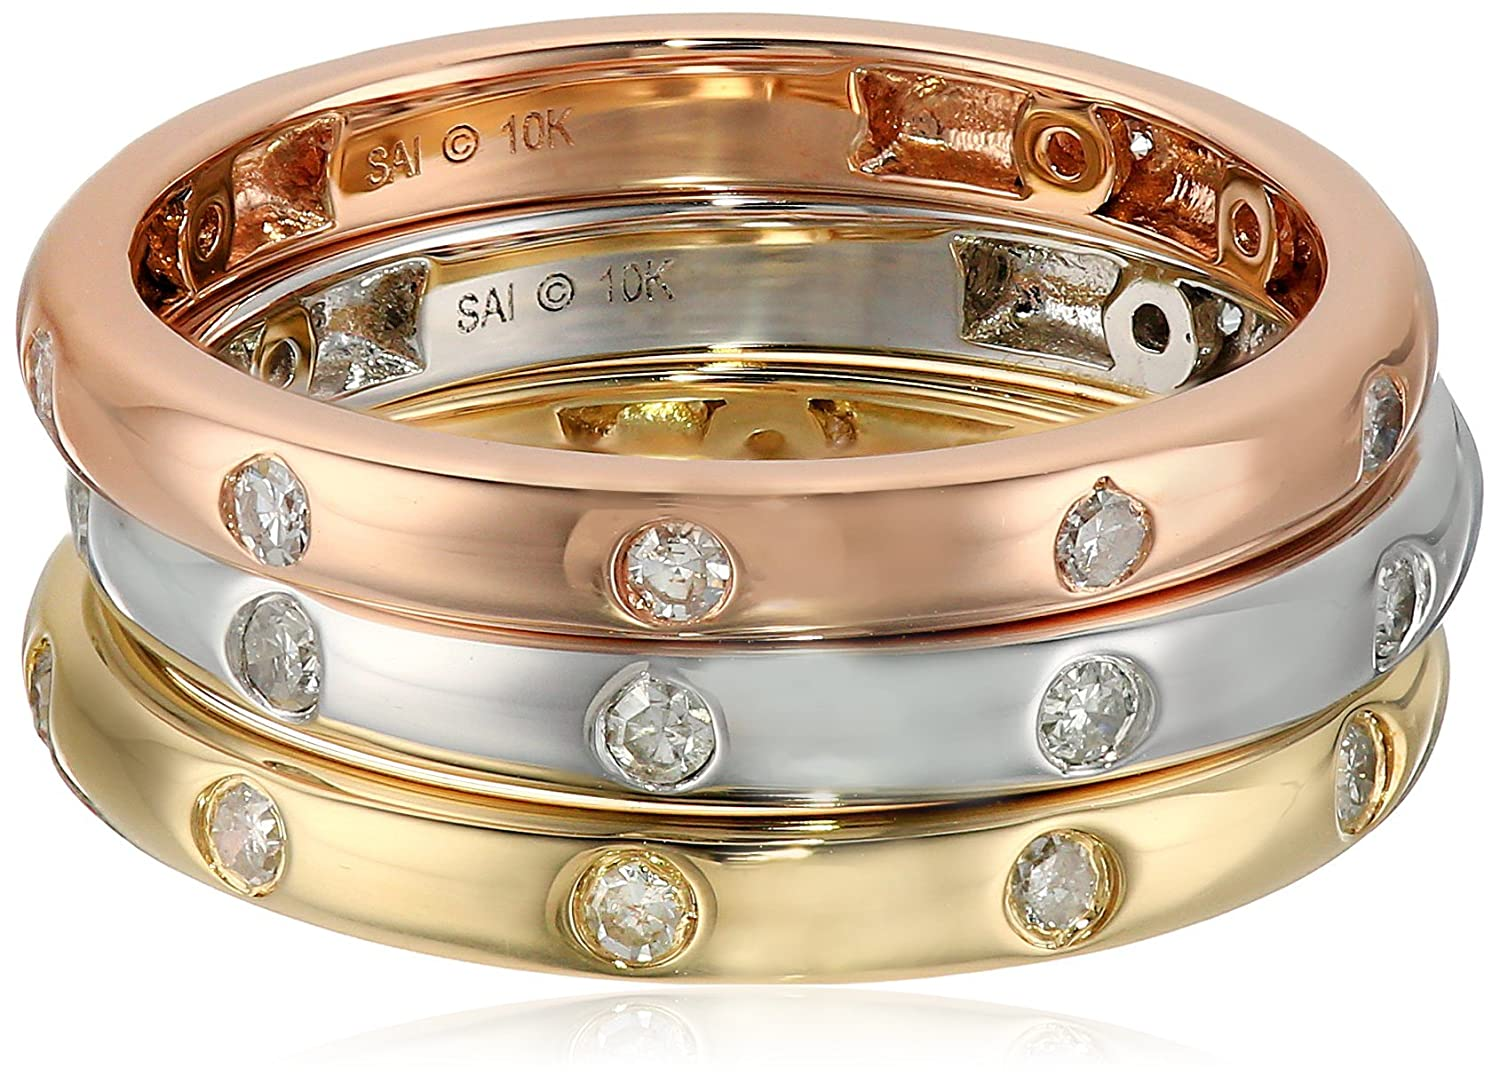 10k White and Yellow and Pink Gold Bezel Diamond Stackable Ring (3/8cttw, I-J Color, I2-I3 Clarity), Size 7